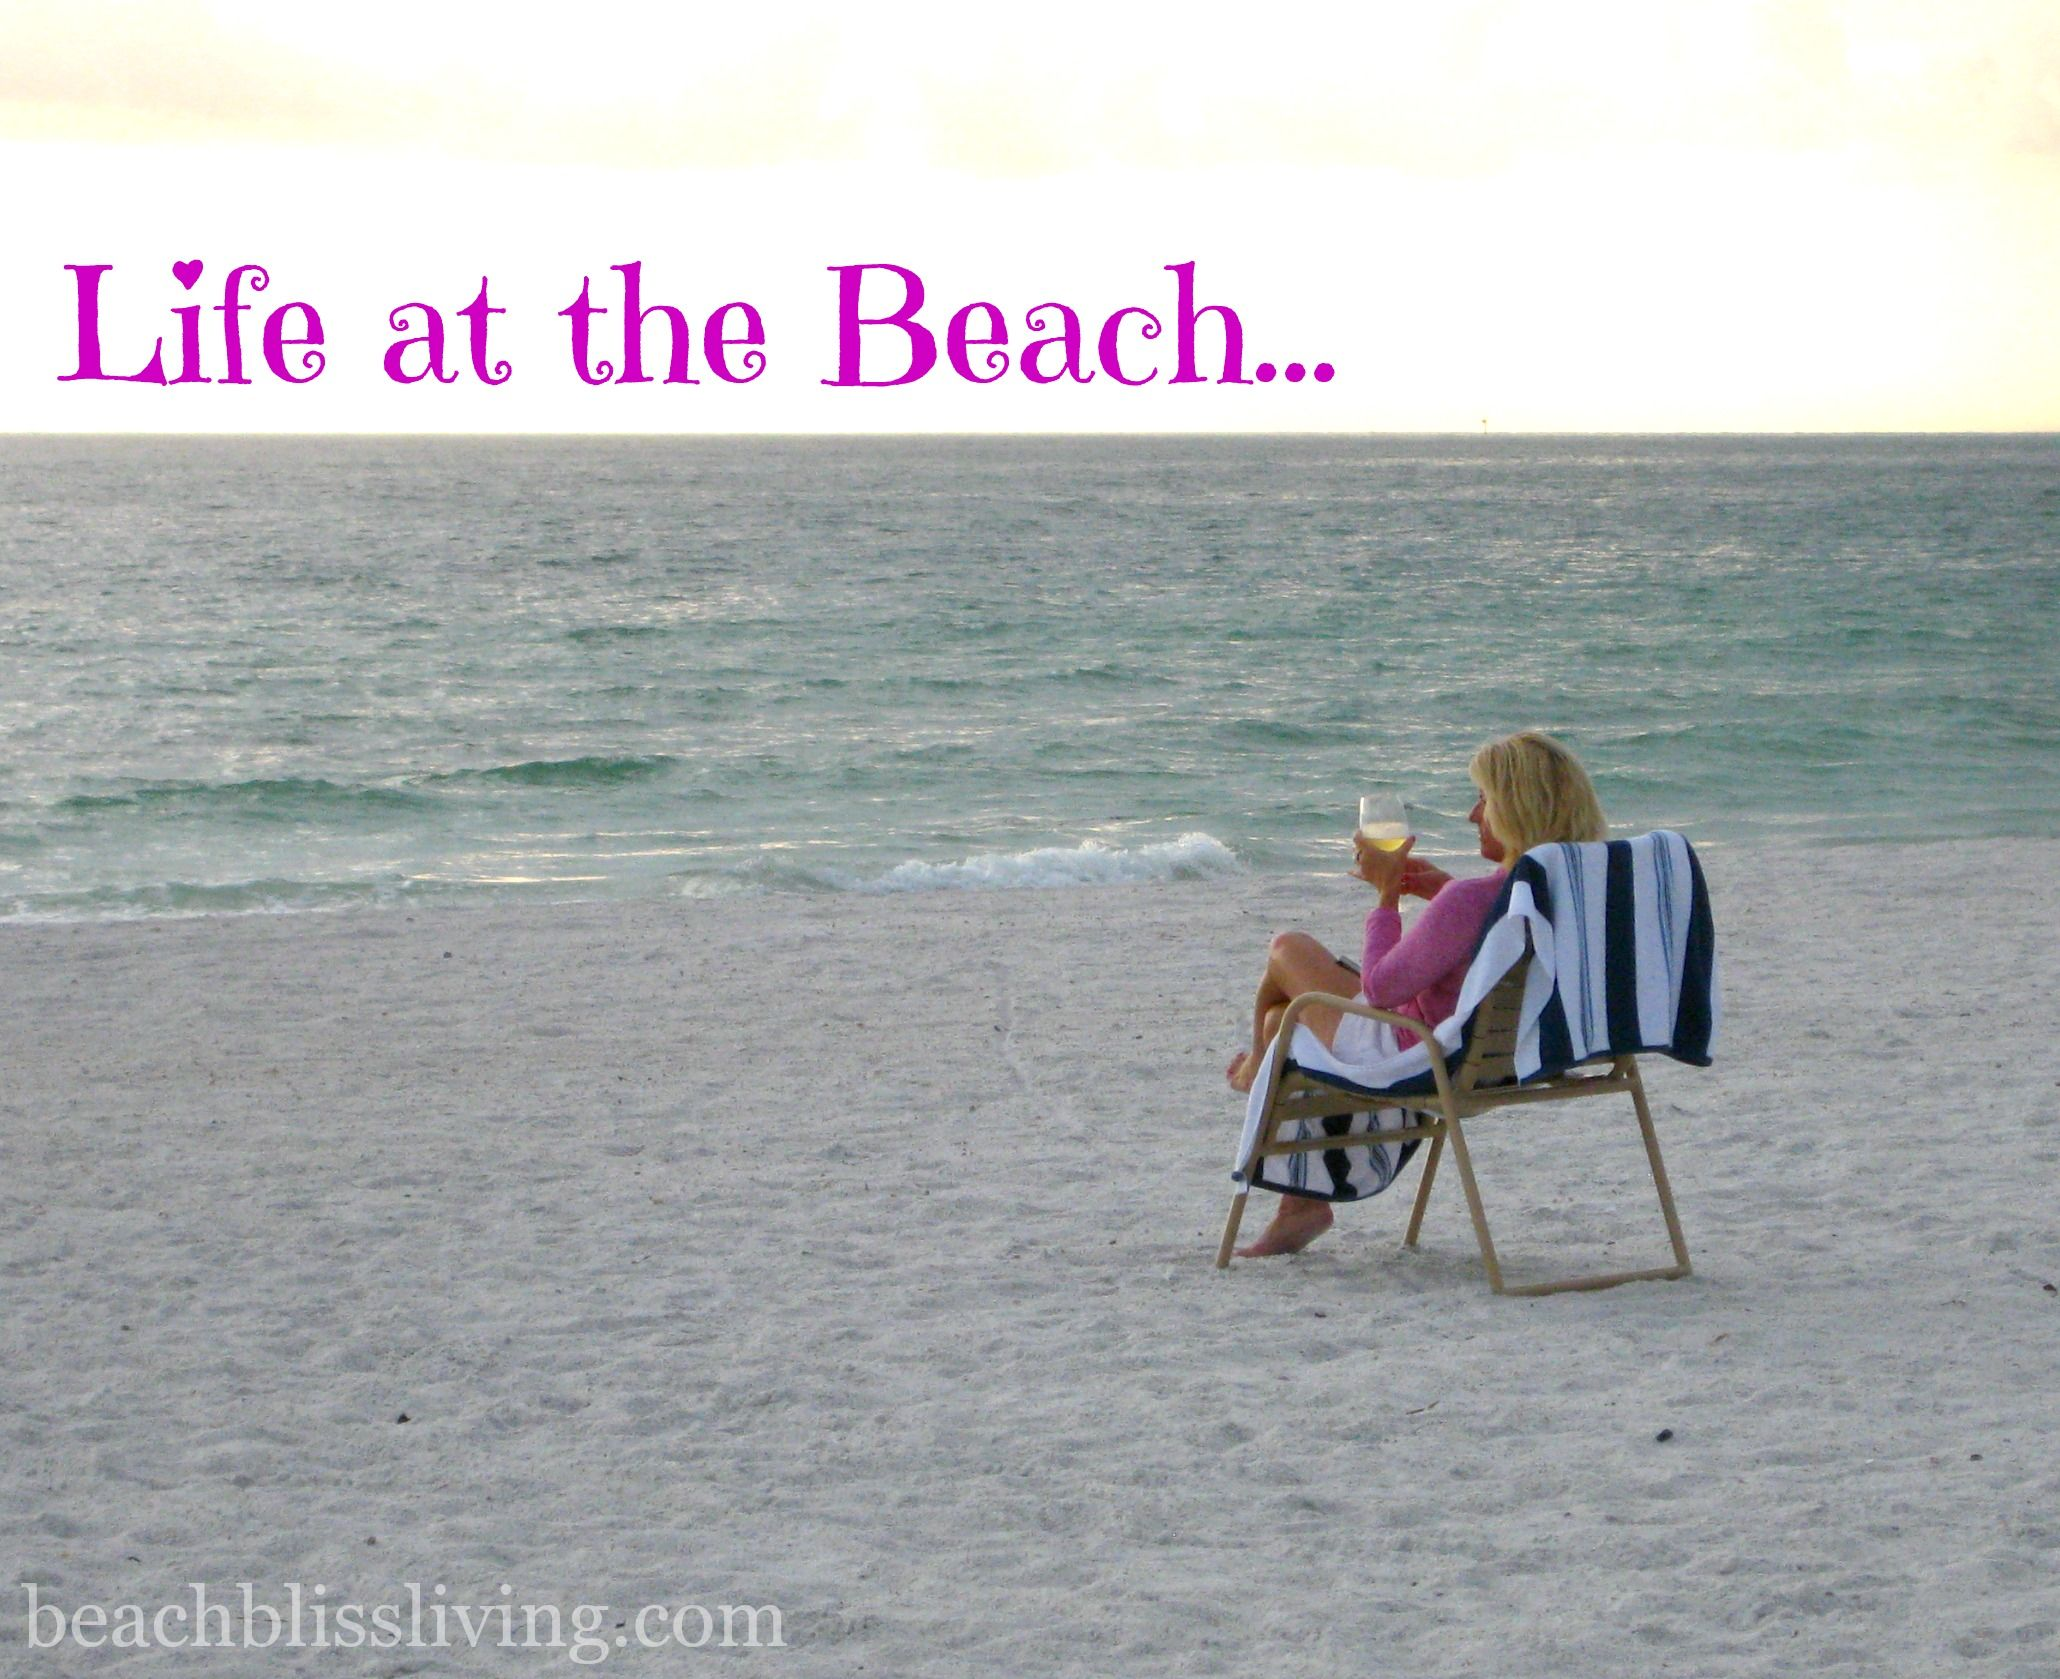 Woman sitting at the beach with drink in hand, enjoying the early evening hour. Photo by Maya of beachblissliving.com